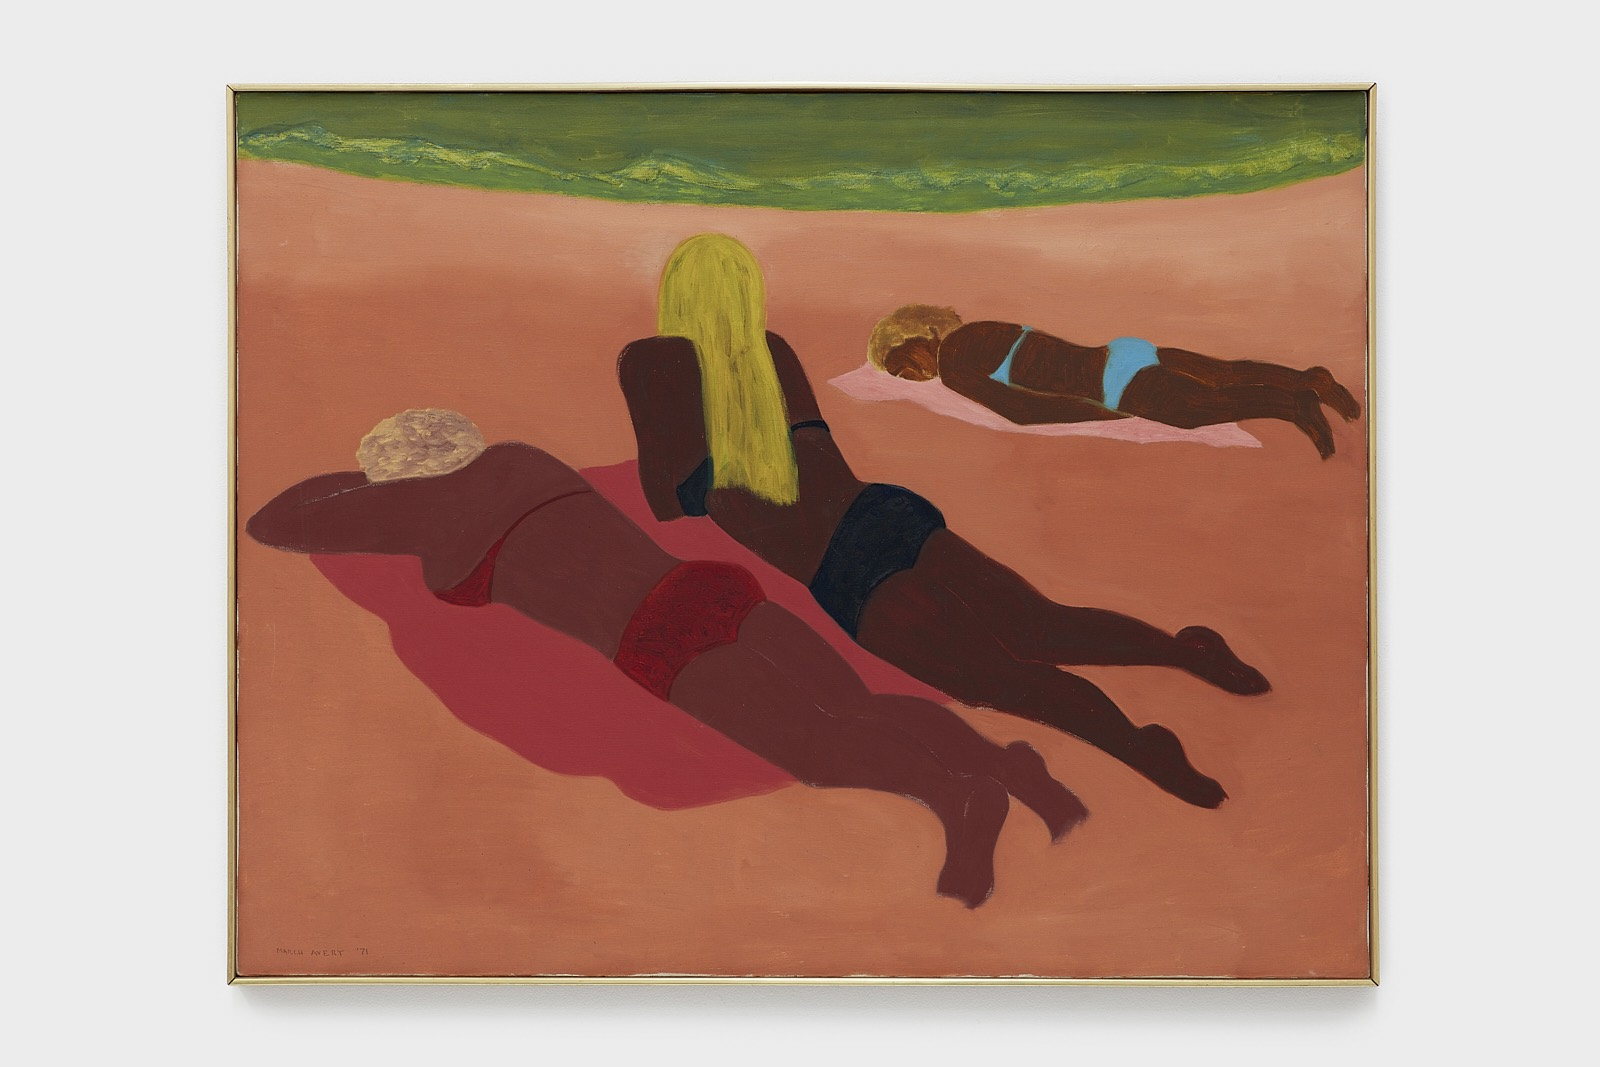 March Avery Sun Worshippers , 1971 Oil on canvas 35 3/8 x 46 inches © March Avery, Courtesy of the artist and Blum & Poe, Los Angeles/New York/Tokyo